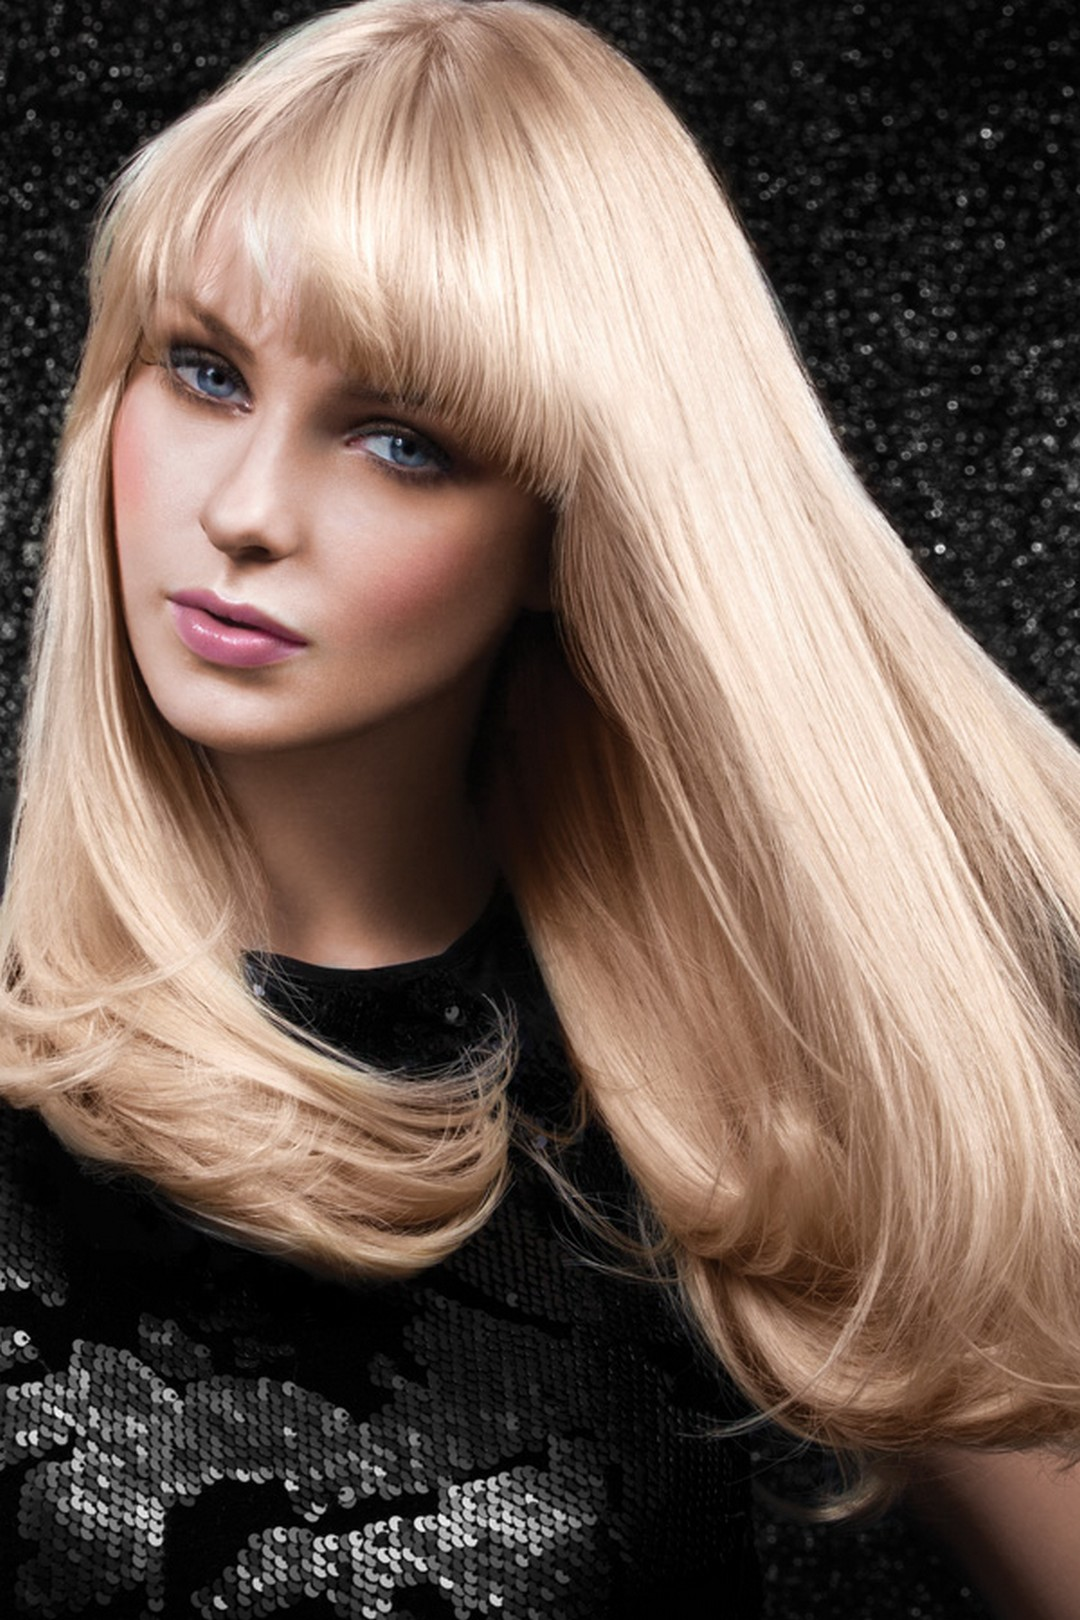 Shop for the Best ClipIn Hair Extensions by Cashmere Hair Cashmere Hair only uses top grade quality human hair for all clipin extensions